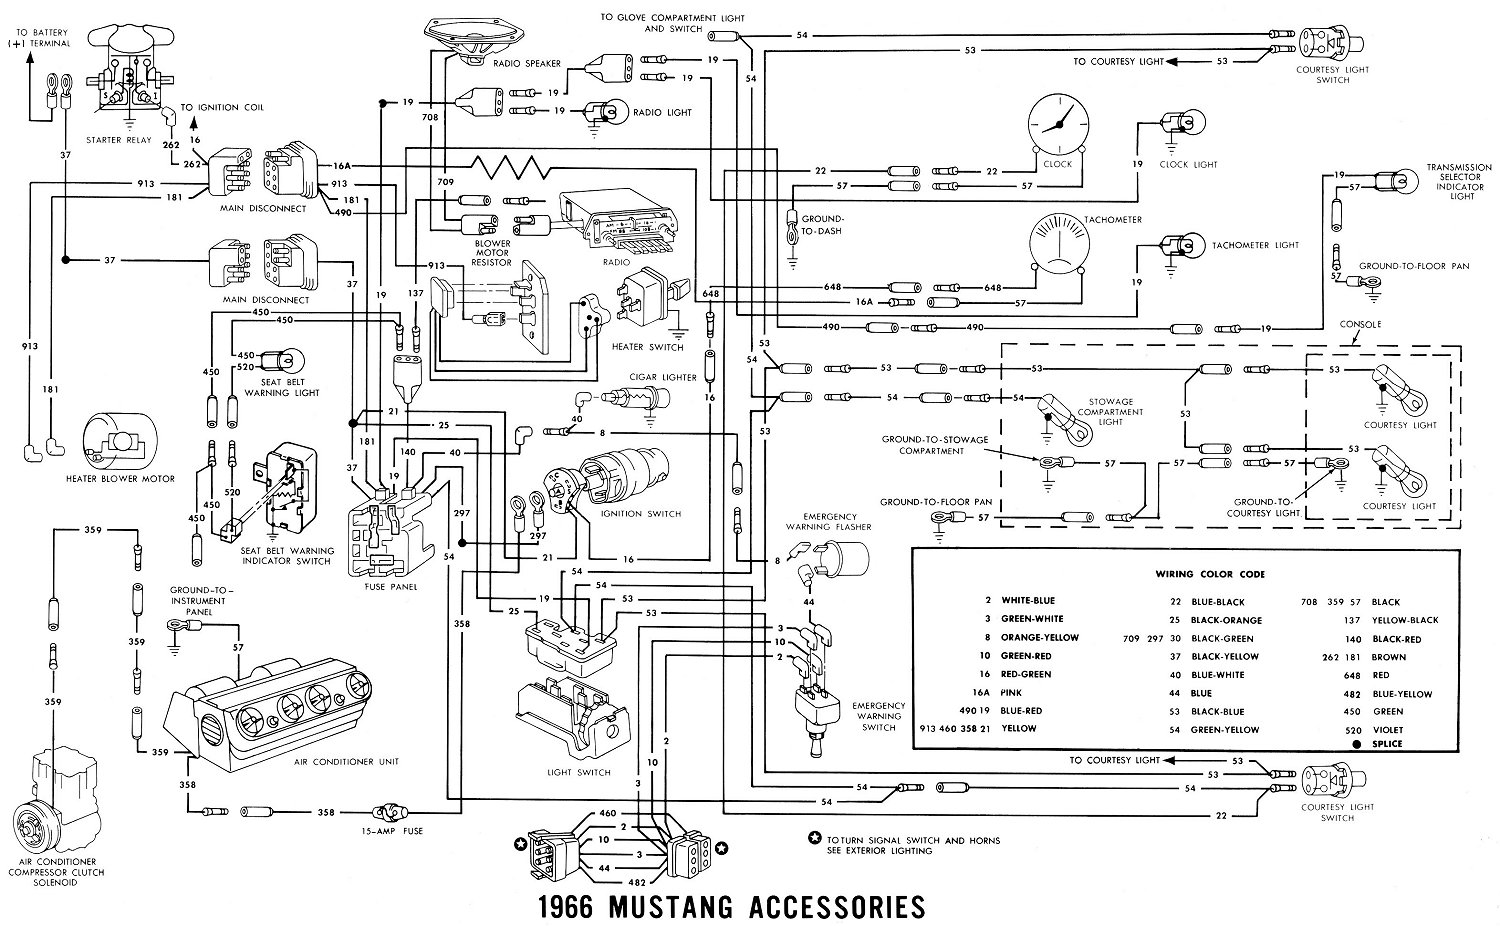 Schematics h besides Car Interior Diagram together with 833313 Shift Indicator Light Wiring furthermore Ford F250 How To Replace Your Side Window 361121 as well Toyota. on 1977 ford f100 ranger interior